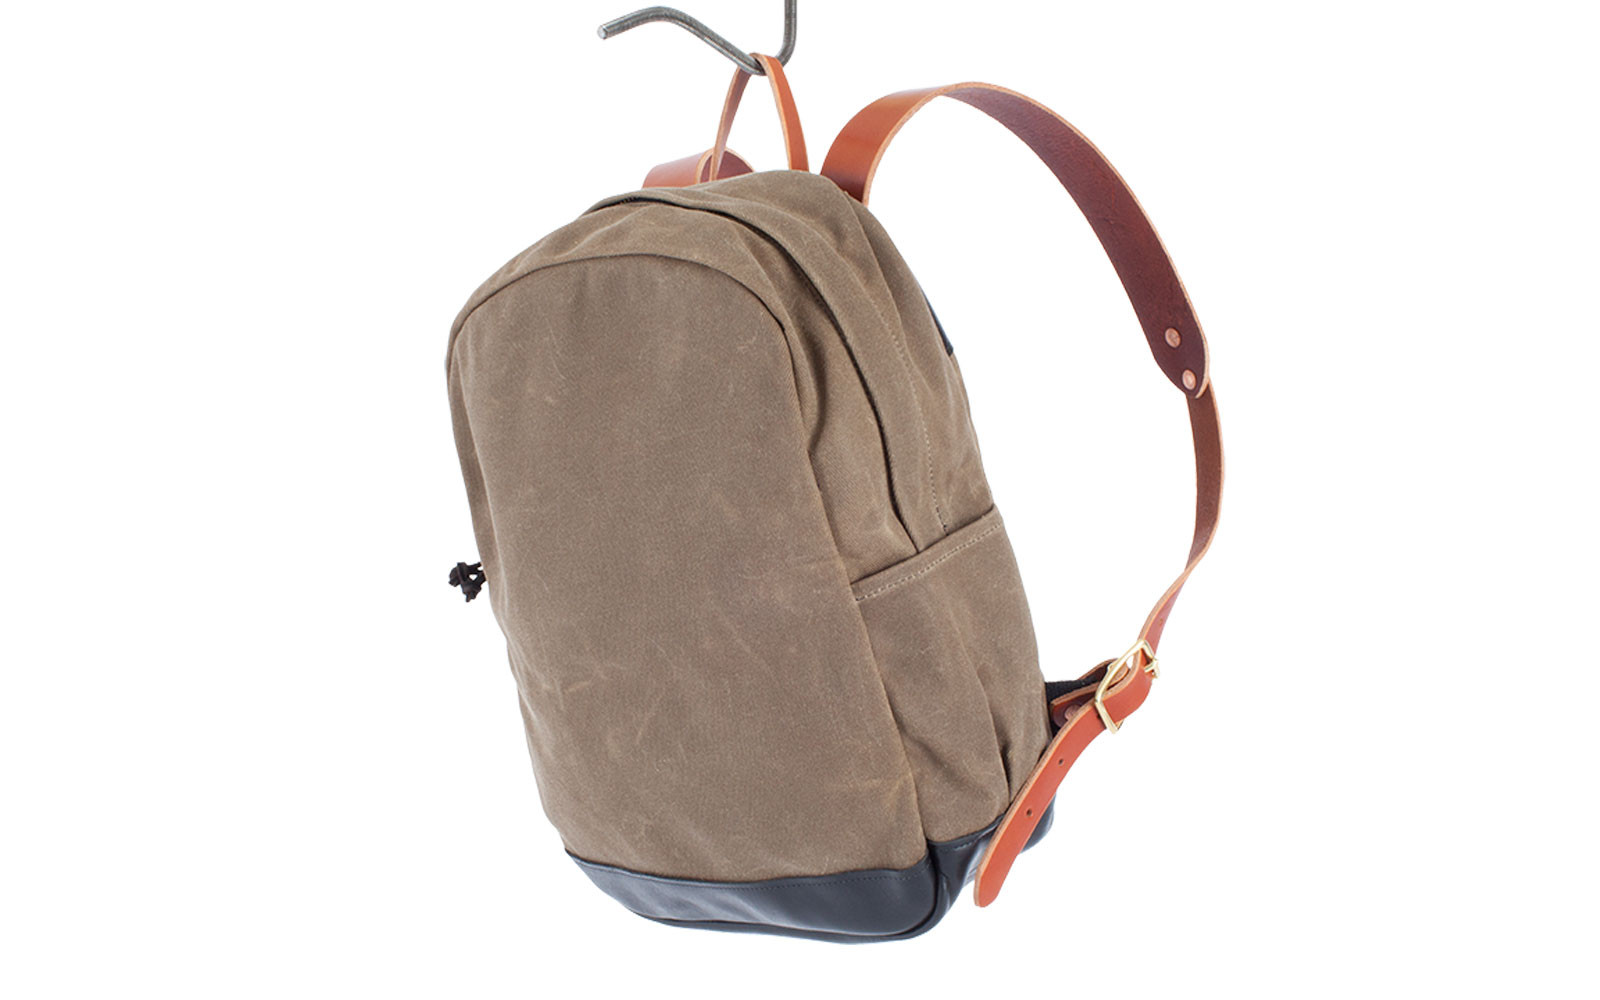 Saddle-tan-waxed-canvas-zip-backpack-back-pack-made-in-the-usa-joshuvela-quarter.jpg